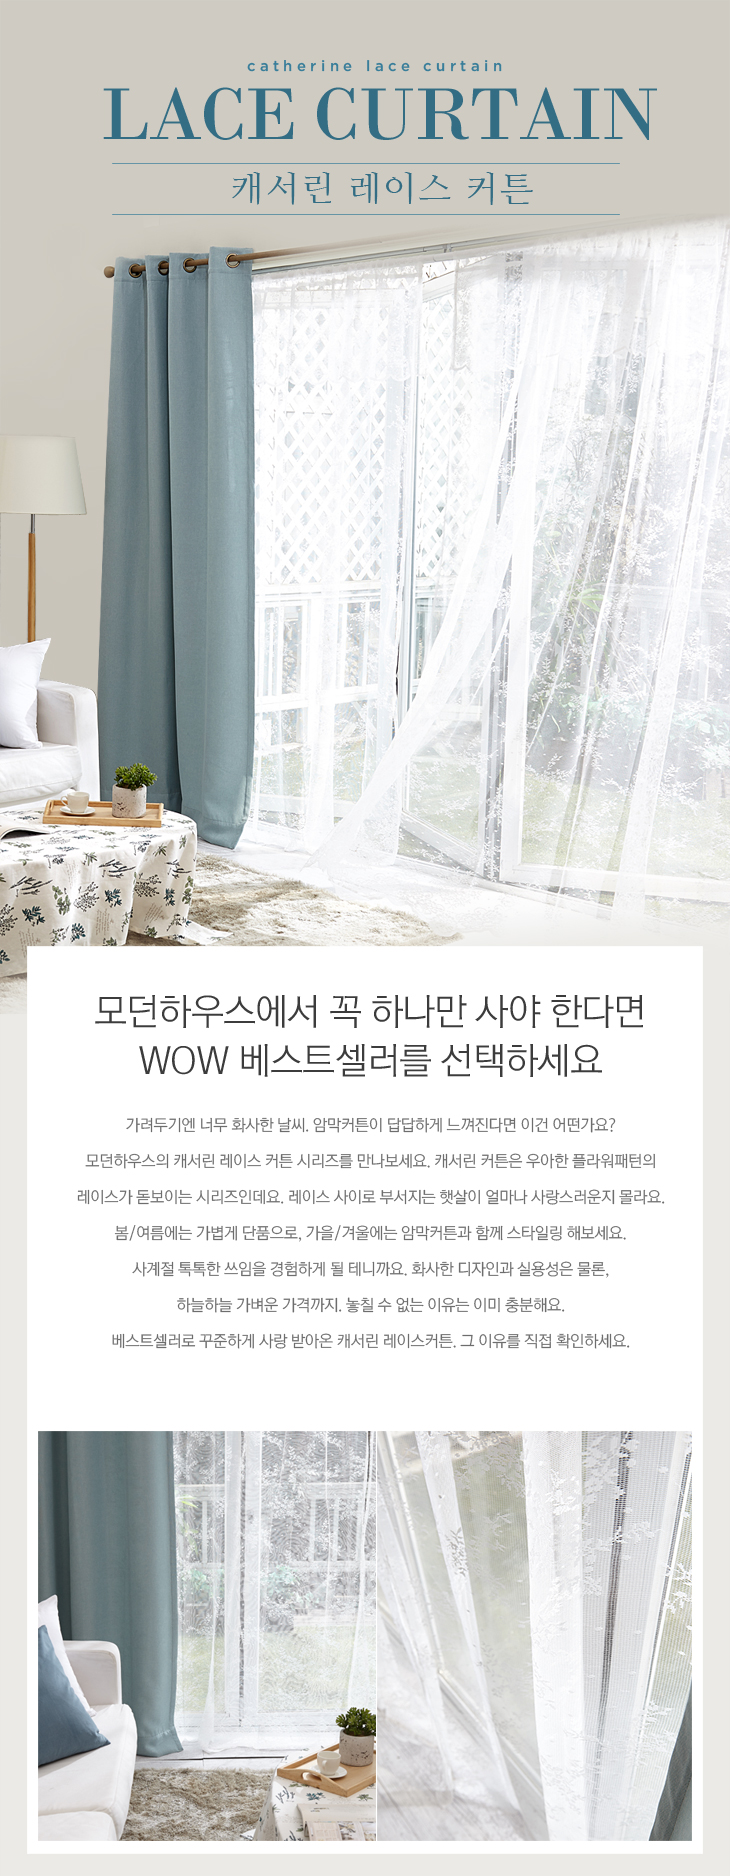 modern-house-wow-catherine-ii-lace-curtains-made-in-korea-dec-1